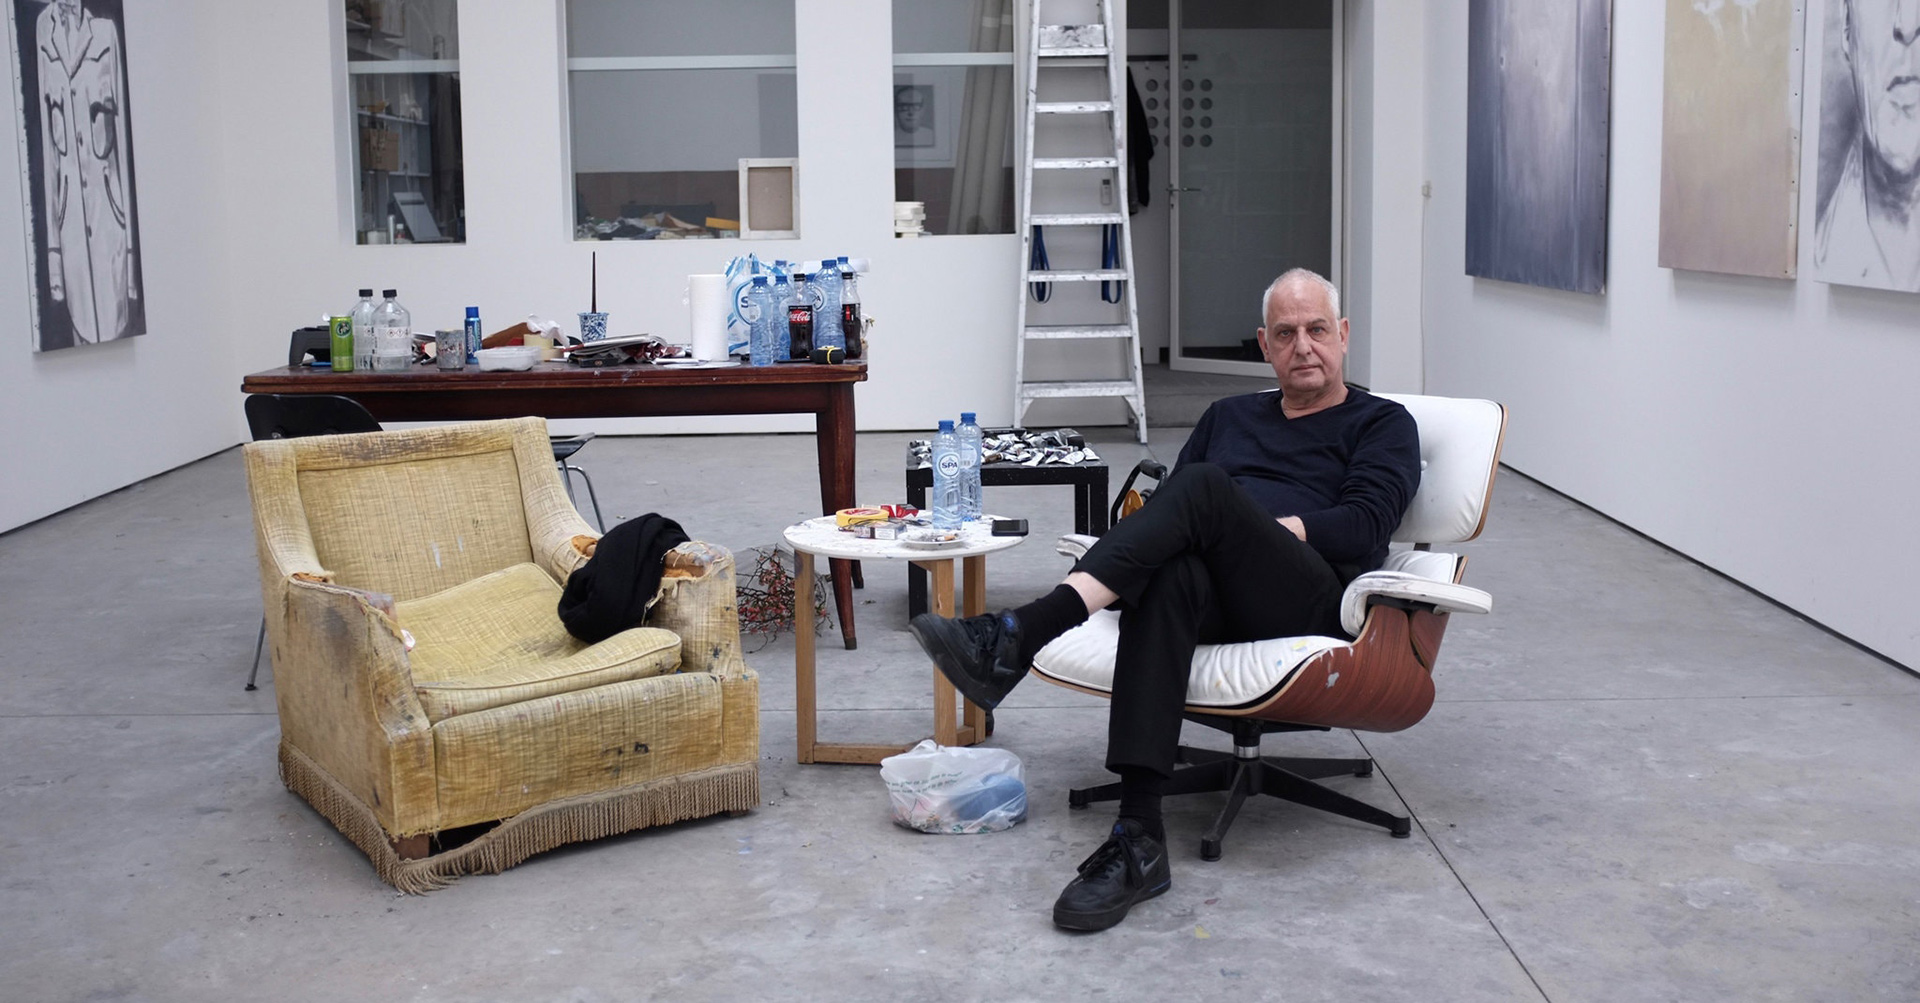 A photo of Luc Tuymans in his Antwerp studio by Mieke Verbijlen in 2020.